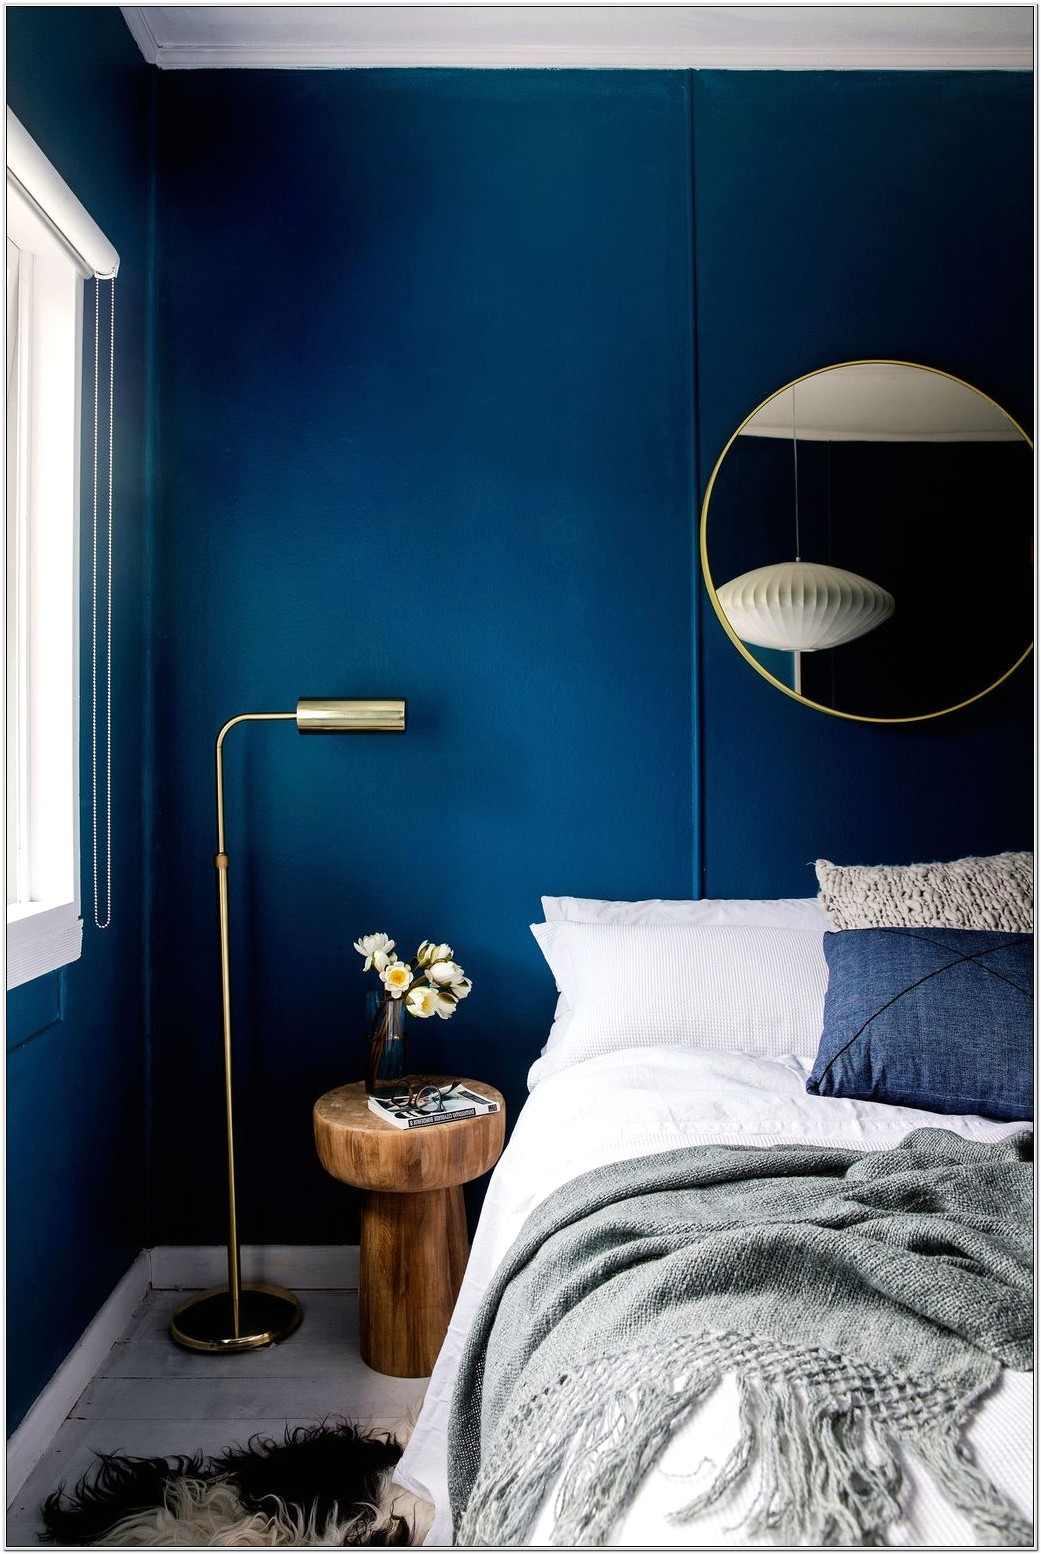 Bedrooms Decorated In Blue And Yellow